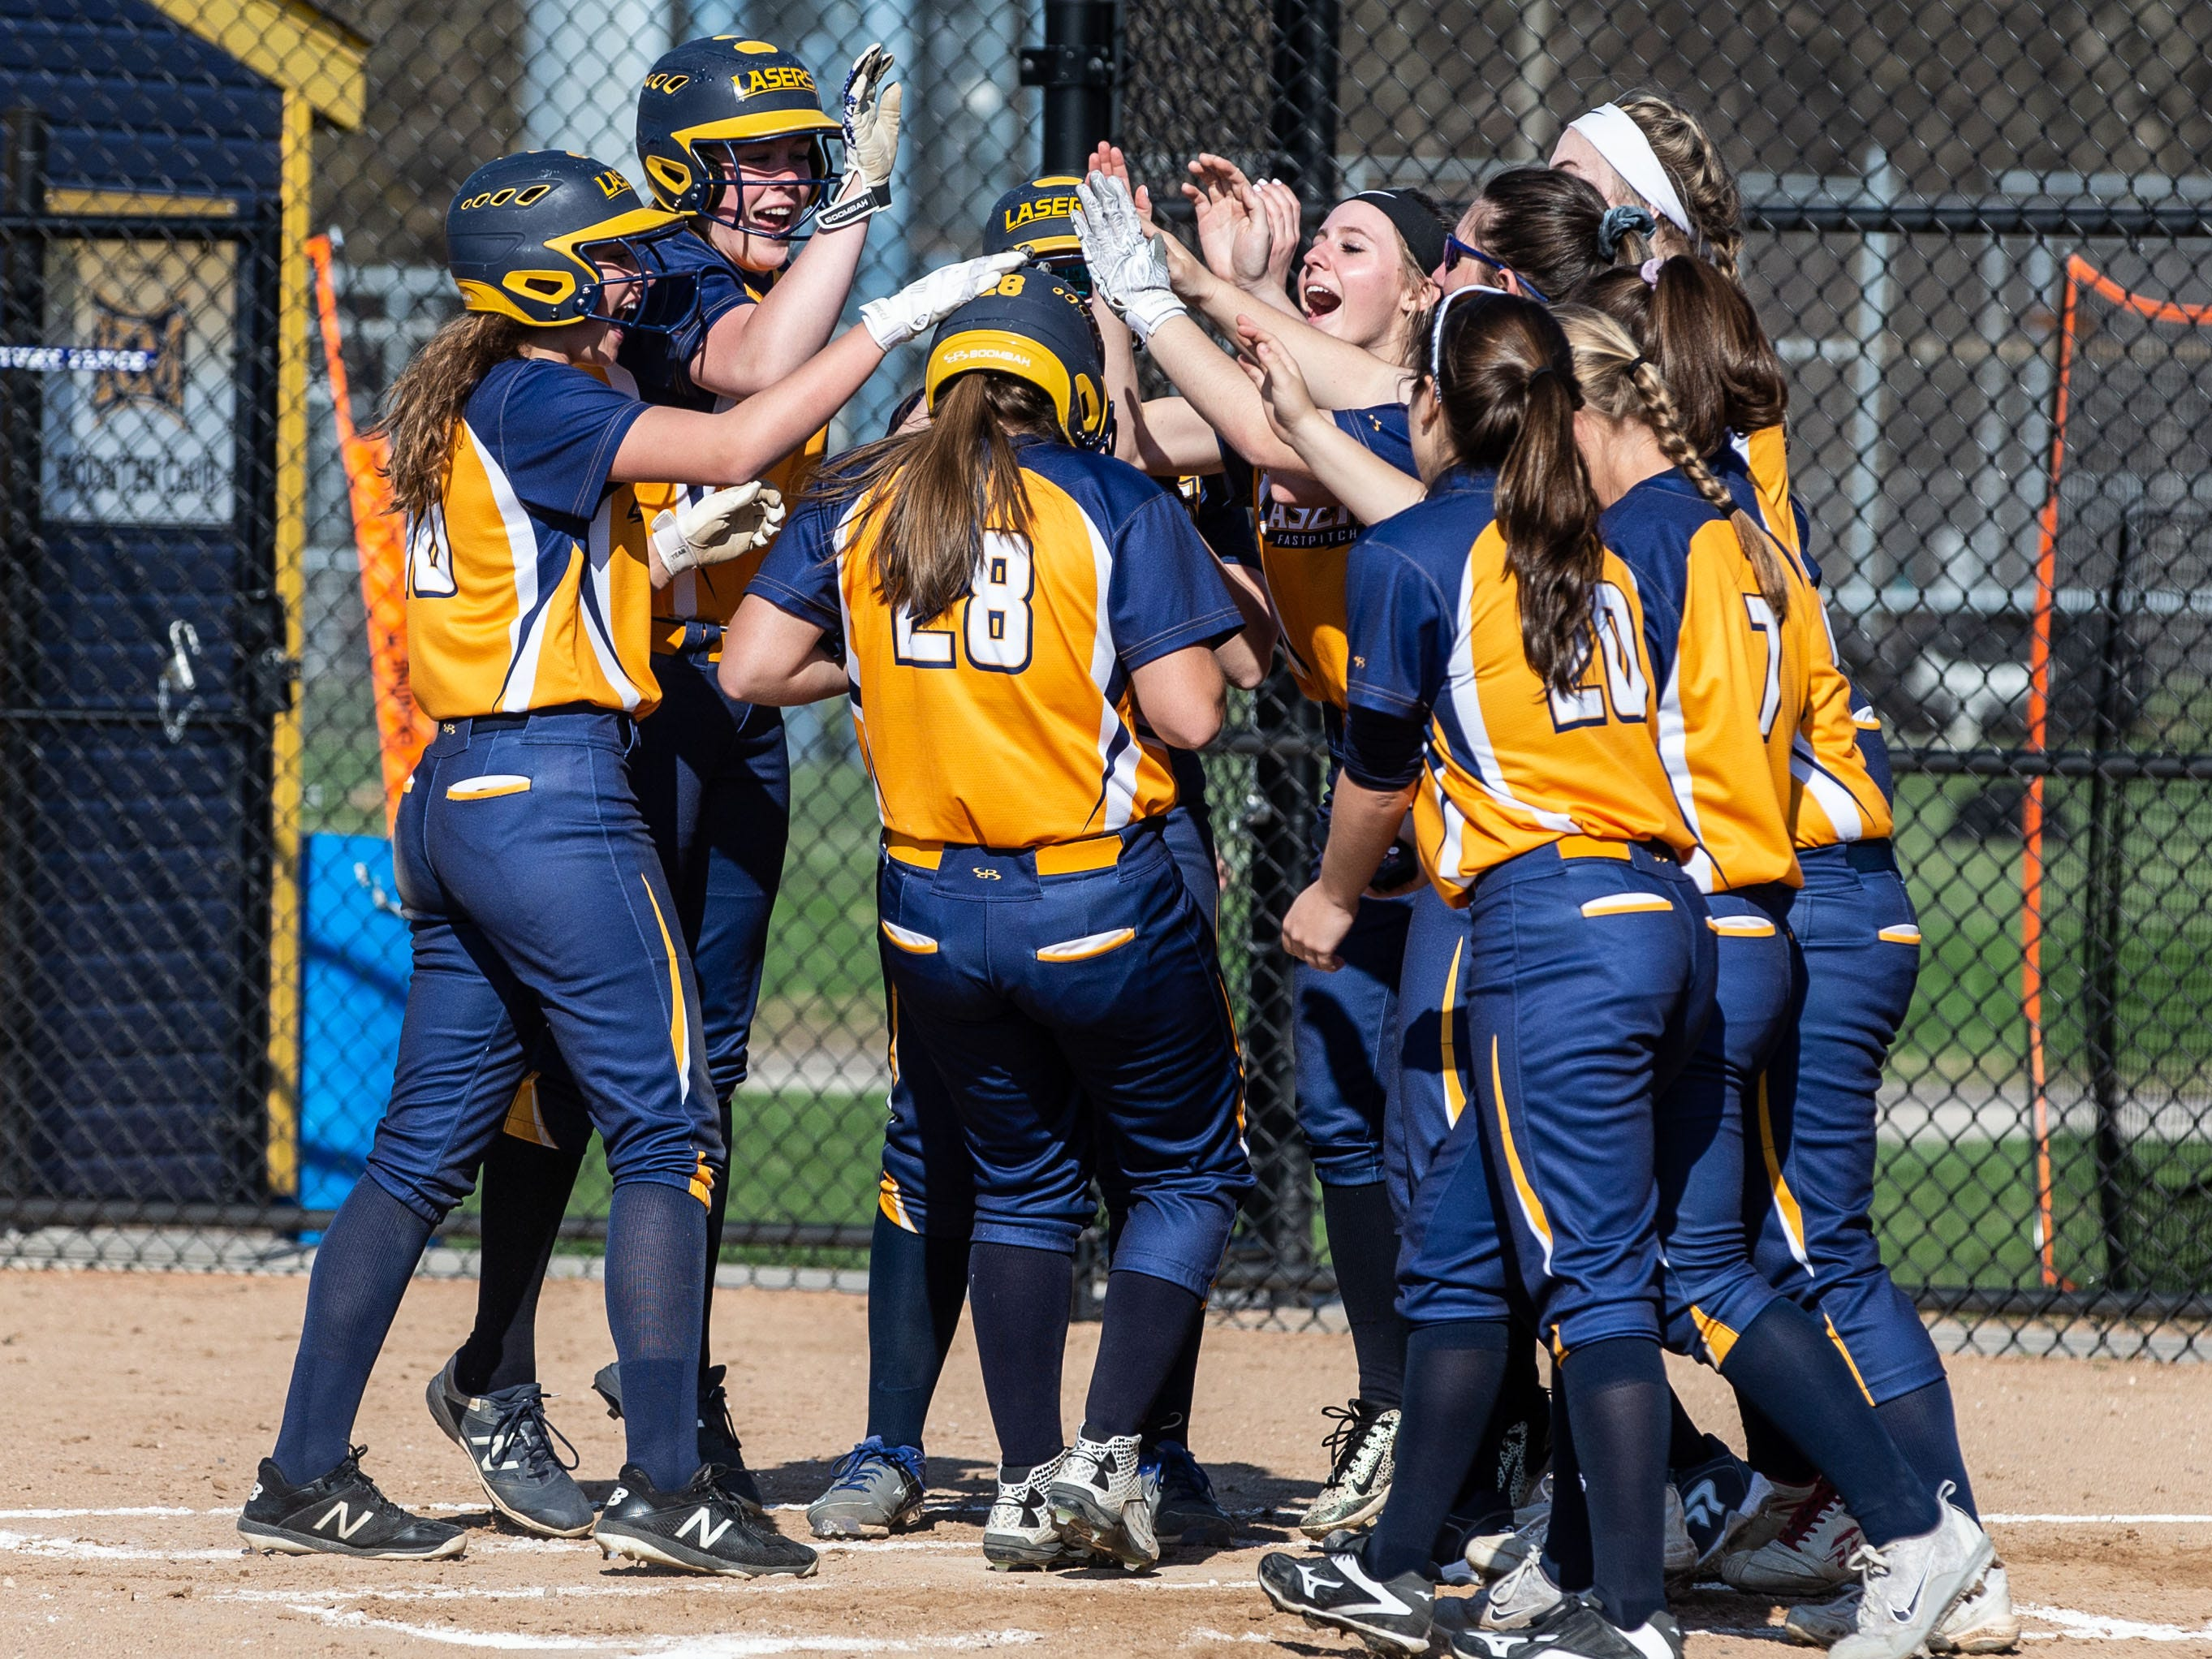 Kettle Moraine's Claudia Spencer (28) receives a hero's welcome after hitting a home run in the game against Sussex Hamilton on Wednesday, April 24, 2019.